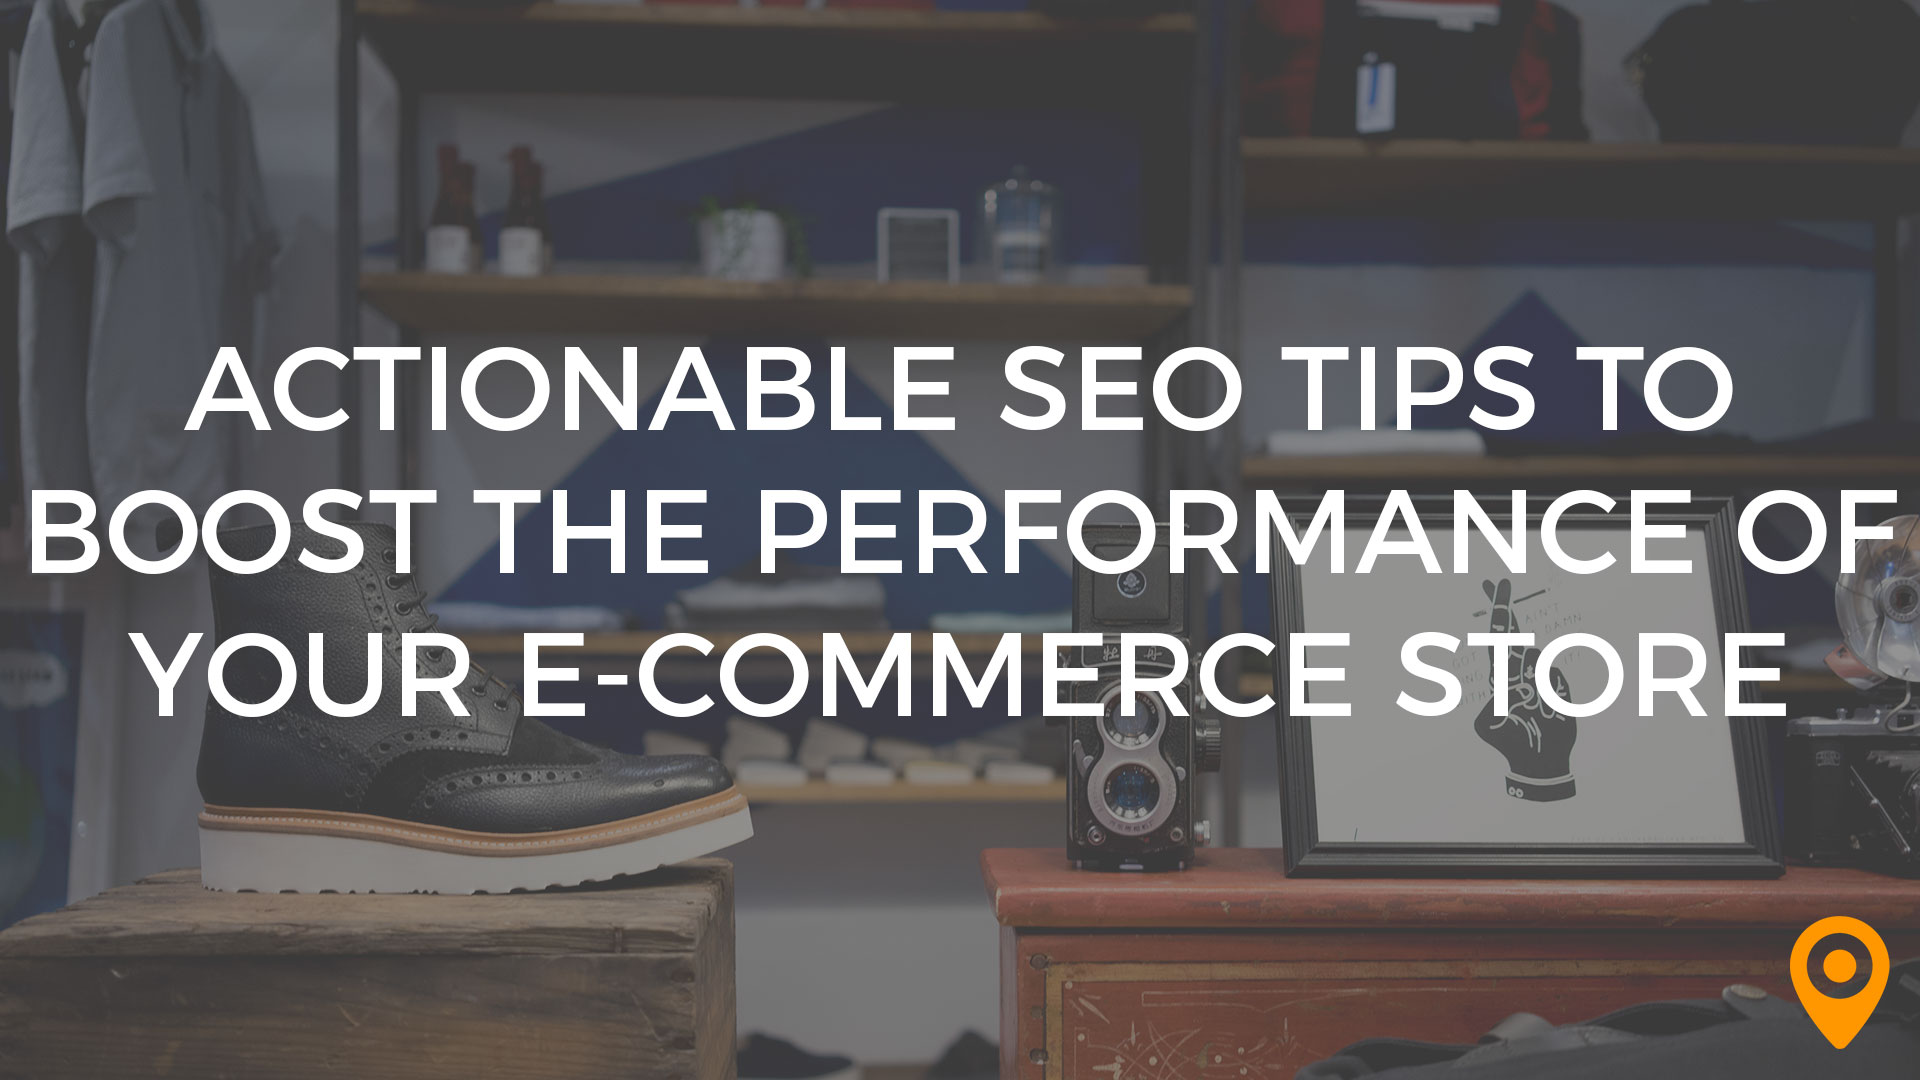 Actionable SEO Tips to Boost the Performance of Your E-Commerce Store